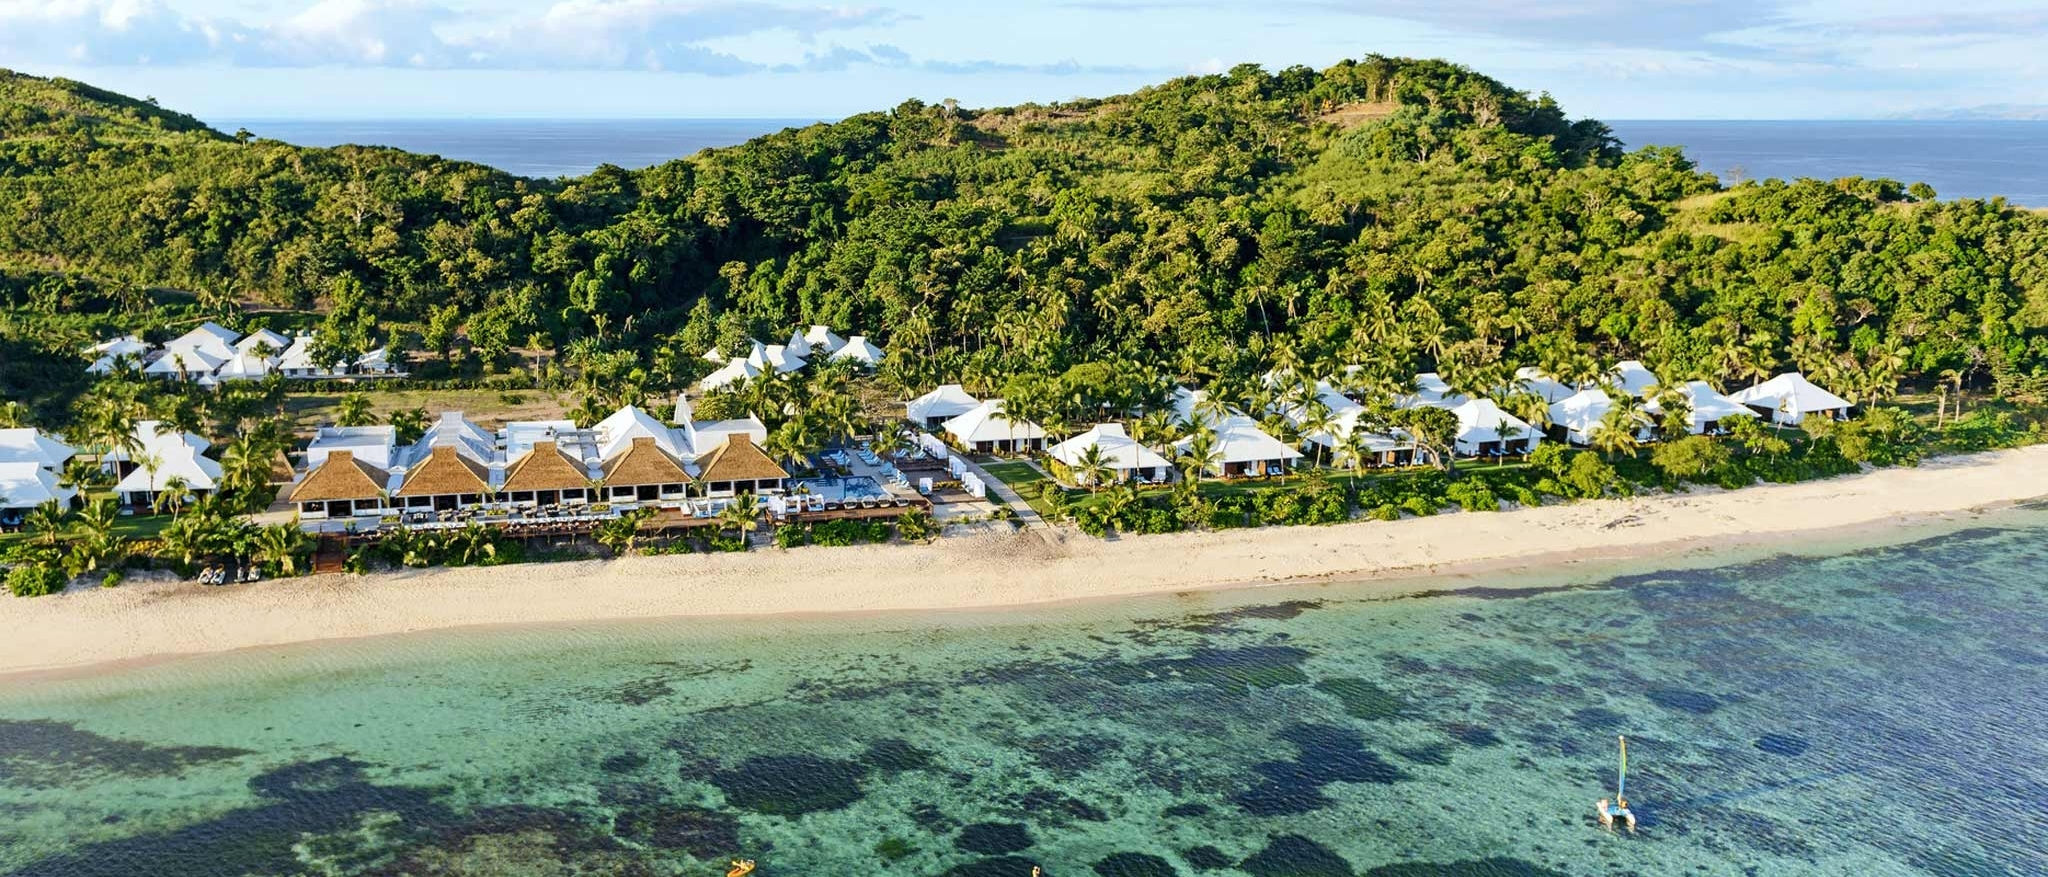 Sheraton Resort & Spa Tokoriki Island - Aerial View